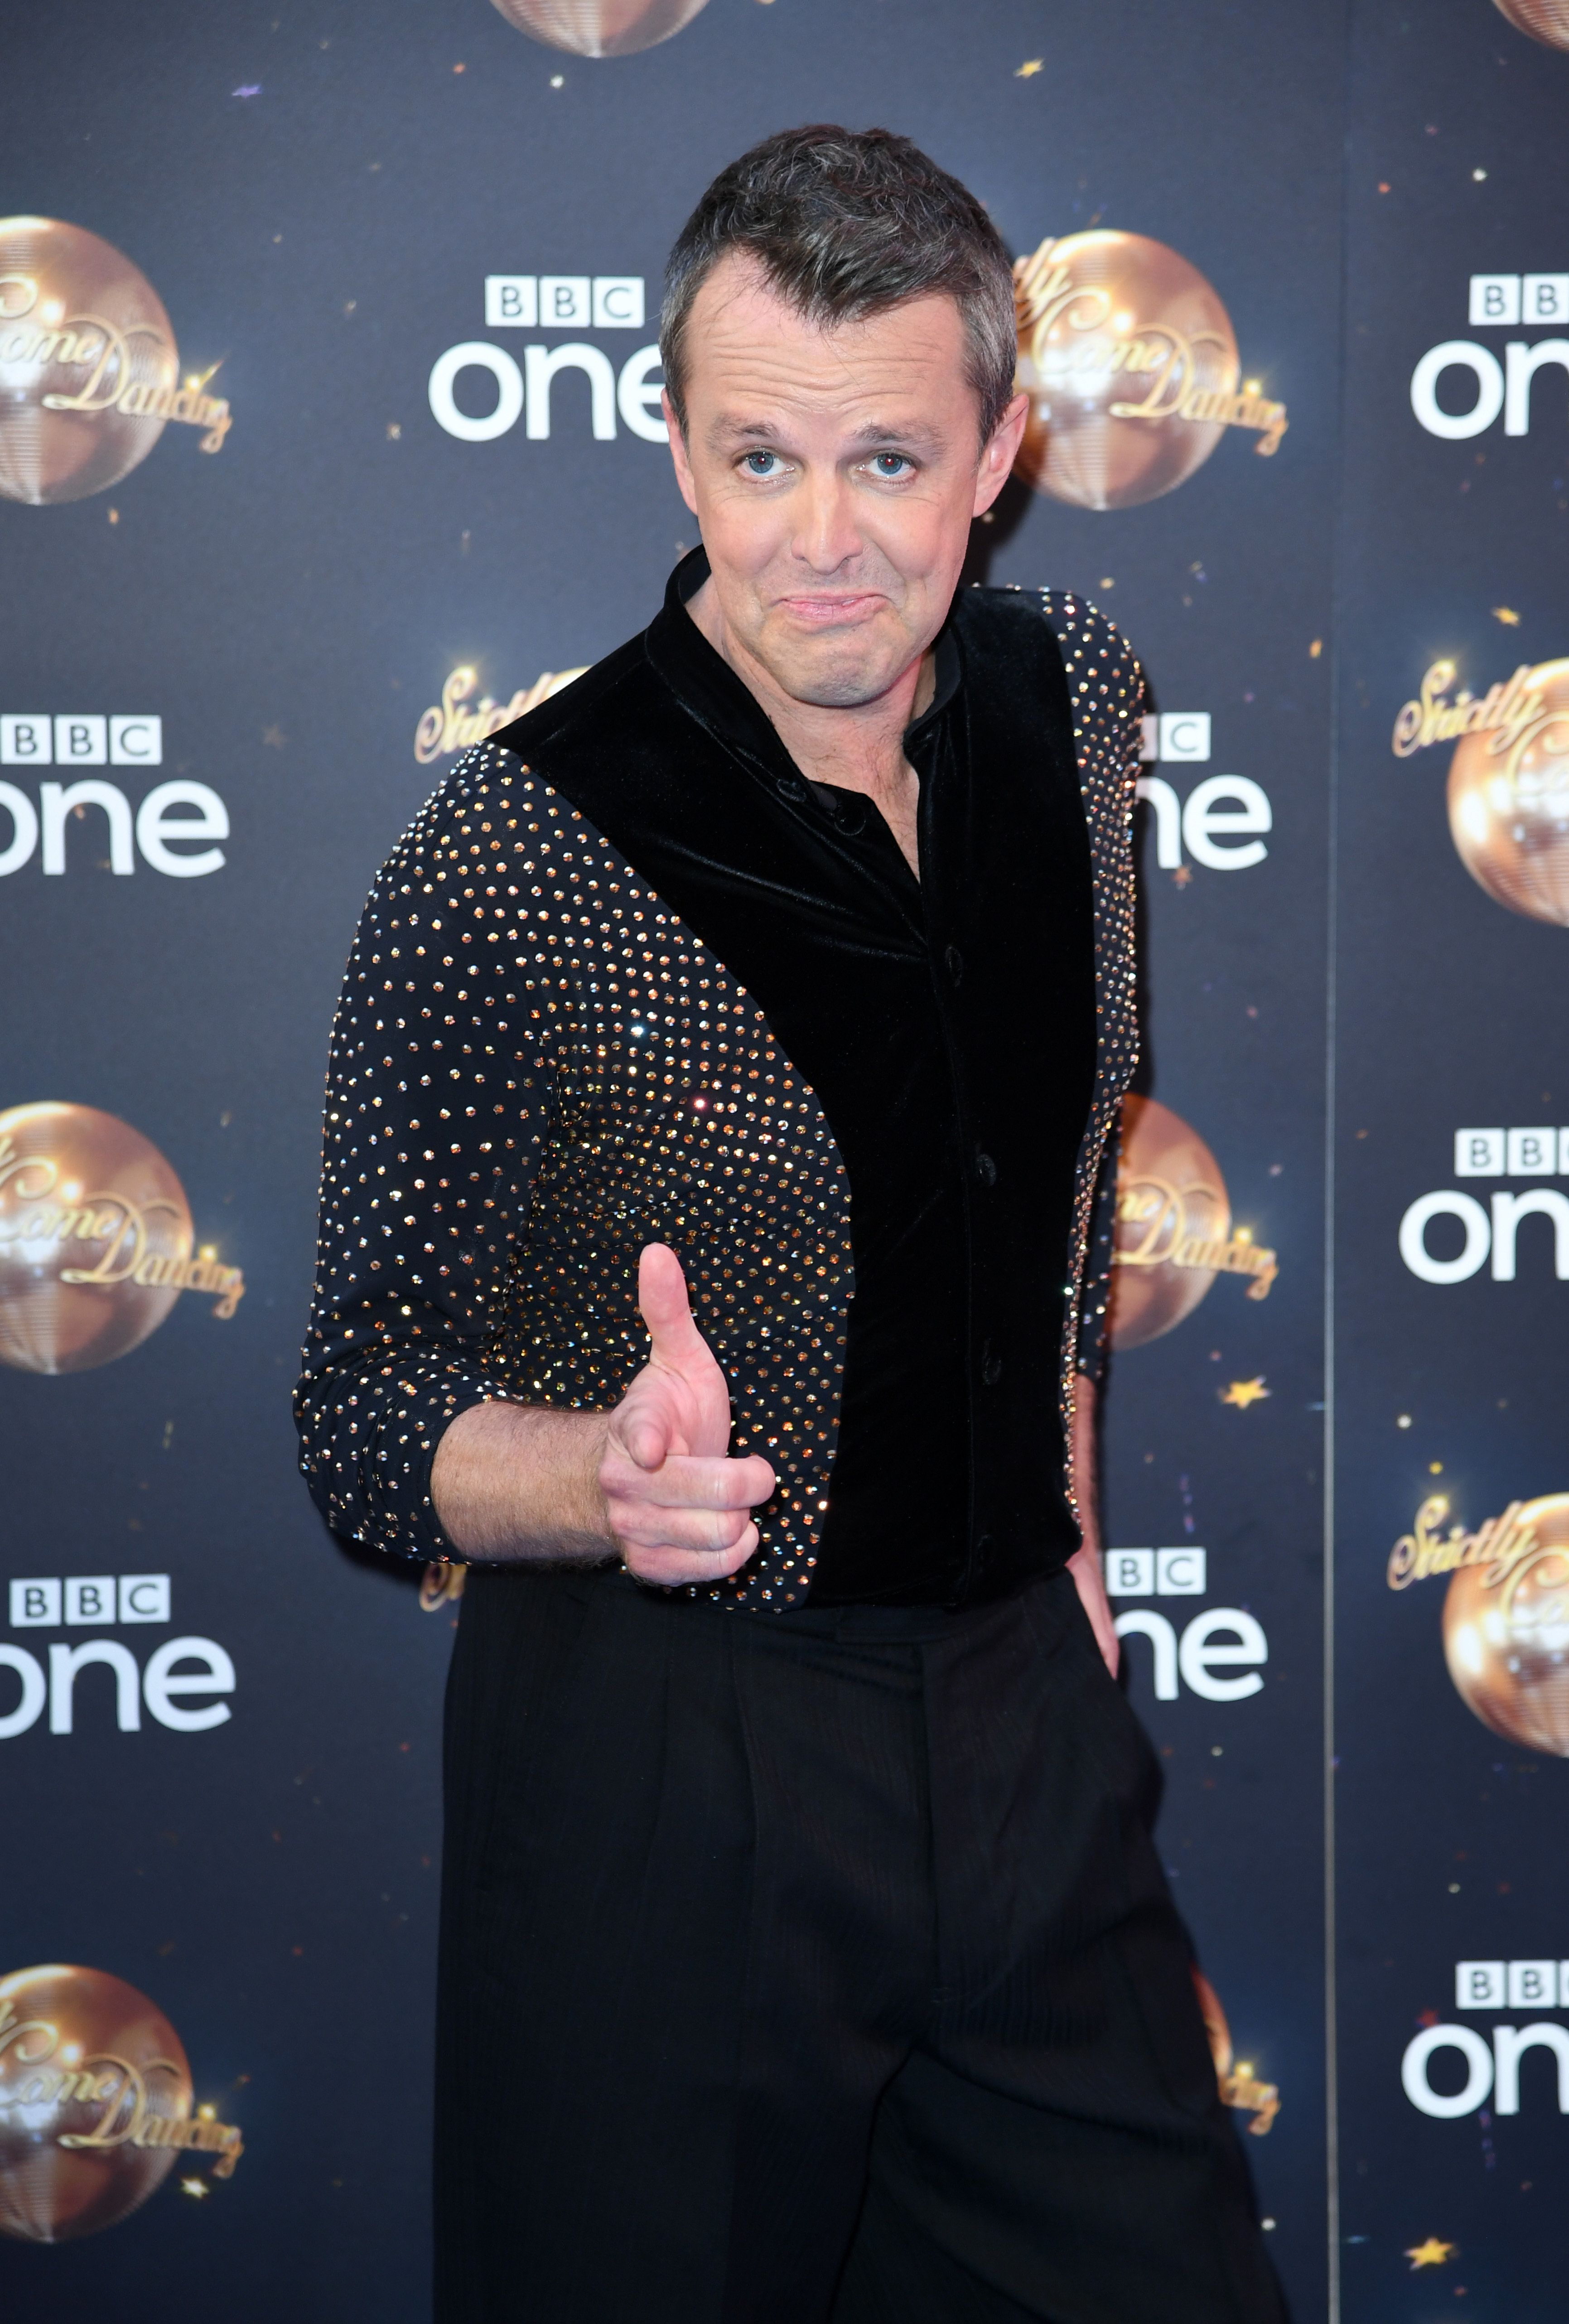 Graeme Swann Hints At Behind-The-Scenes 'Back-Stabbing' On 'Strictly Come